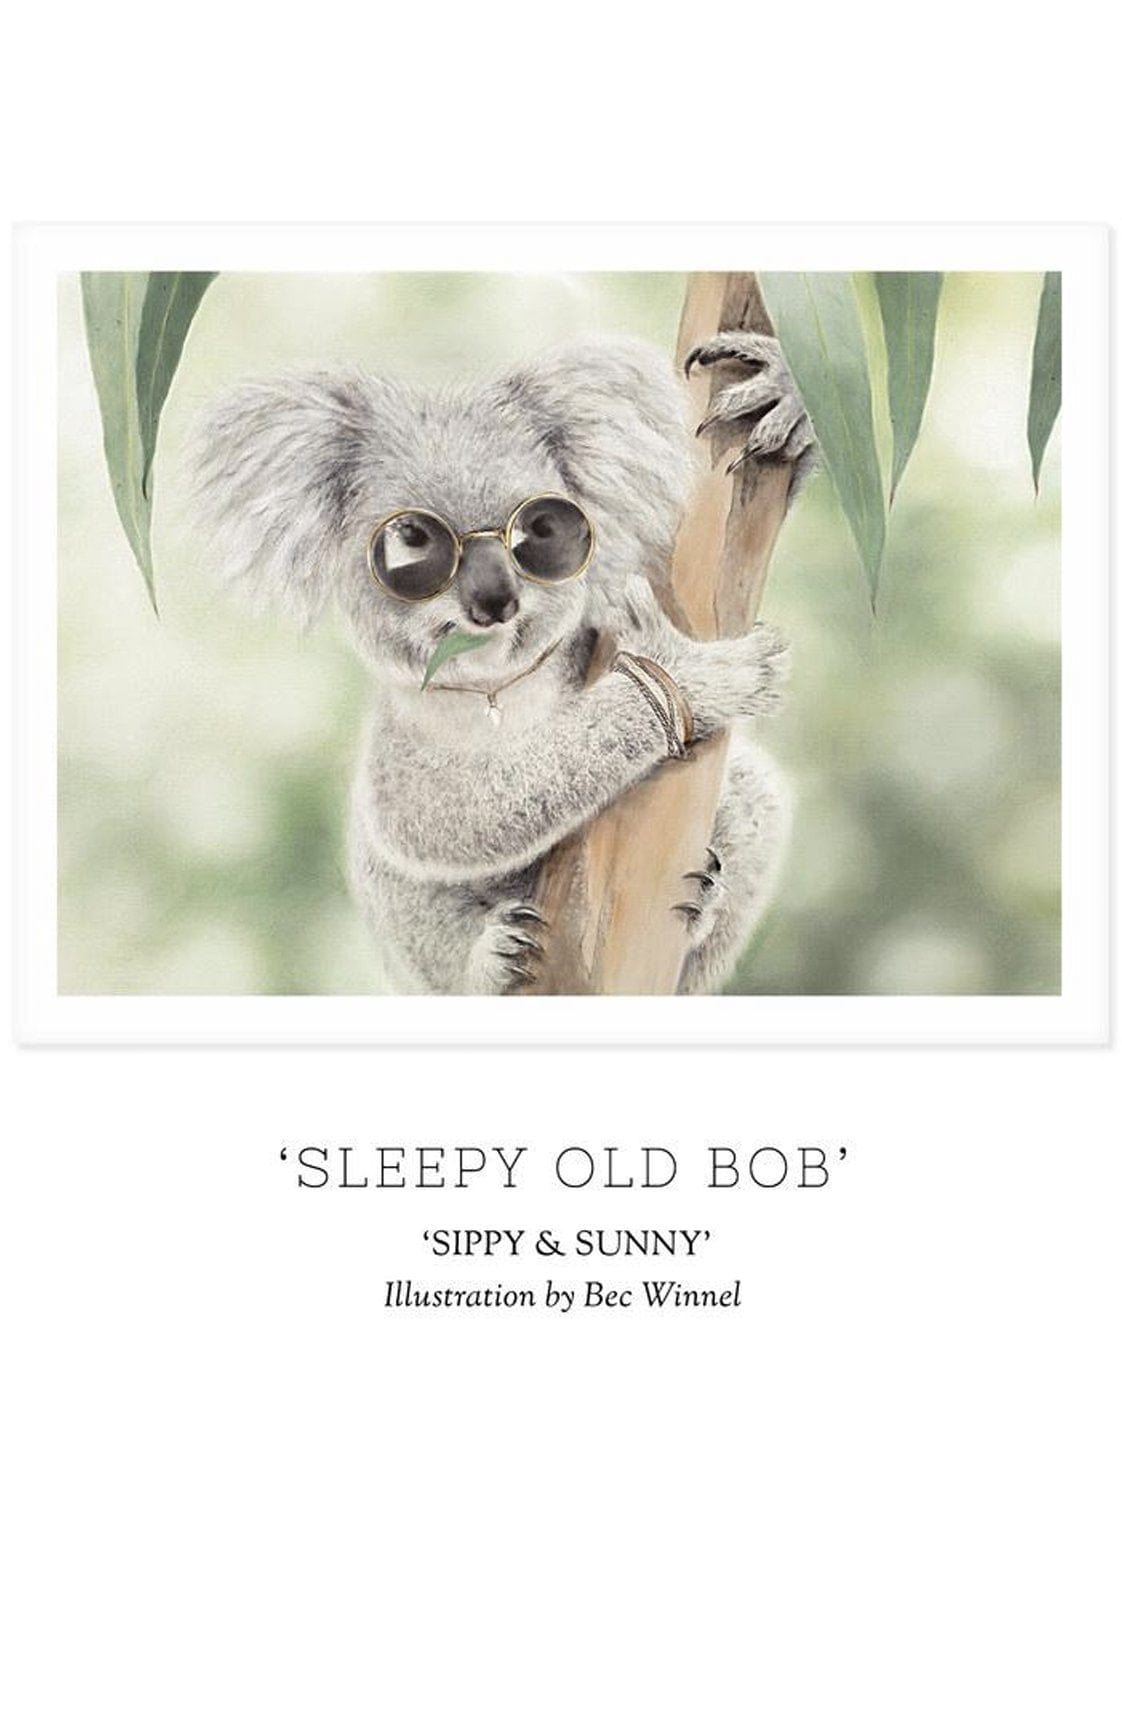 Unclebearskin Productions, SIPPY & SUNNY - 'SLEEPY OLD BOB' Print - Hello Little Birdie